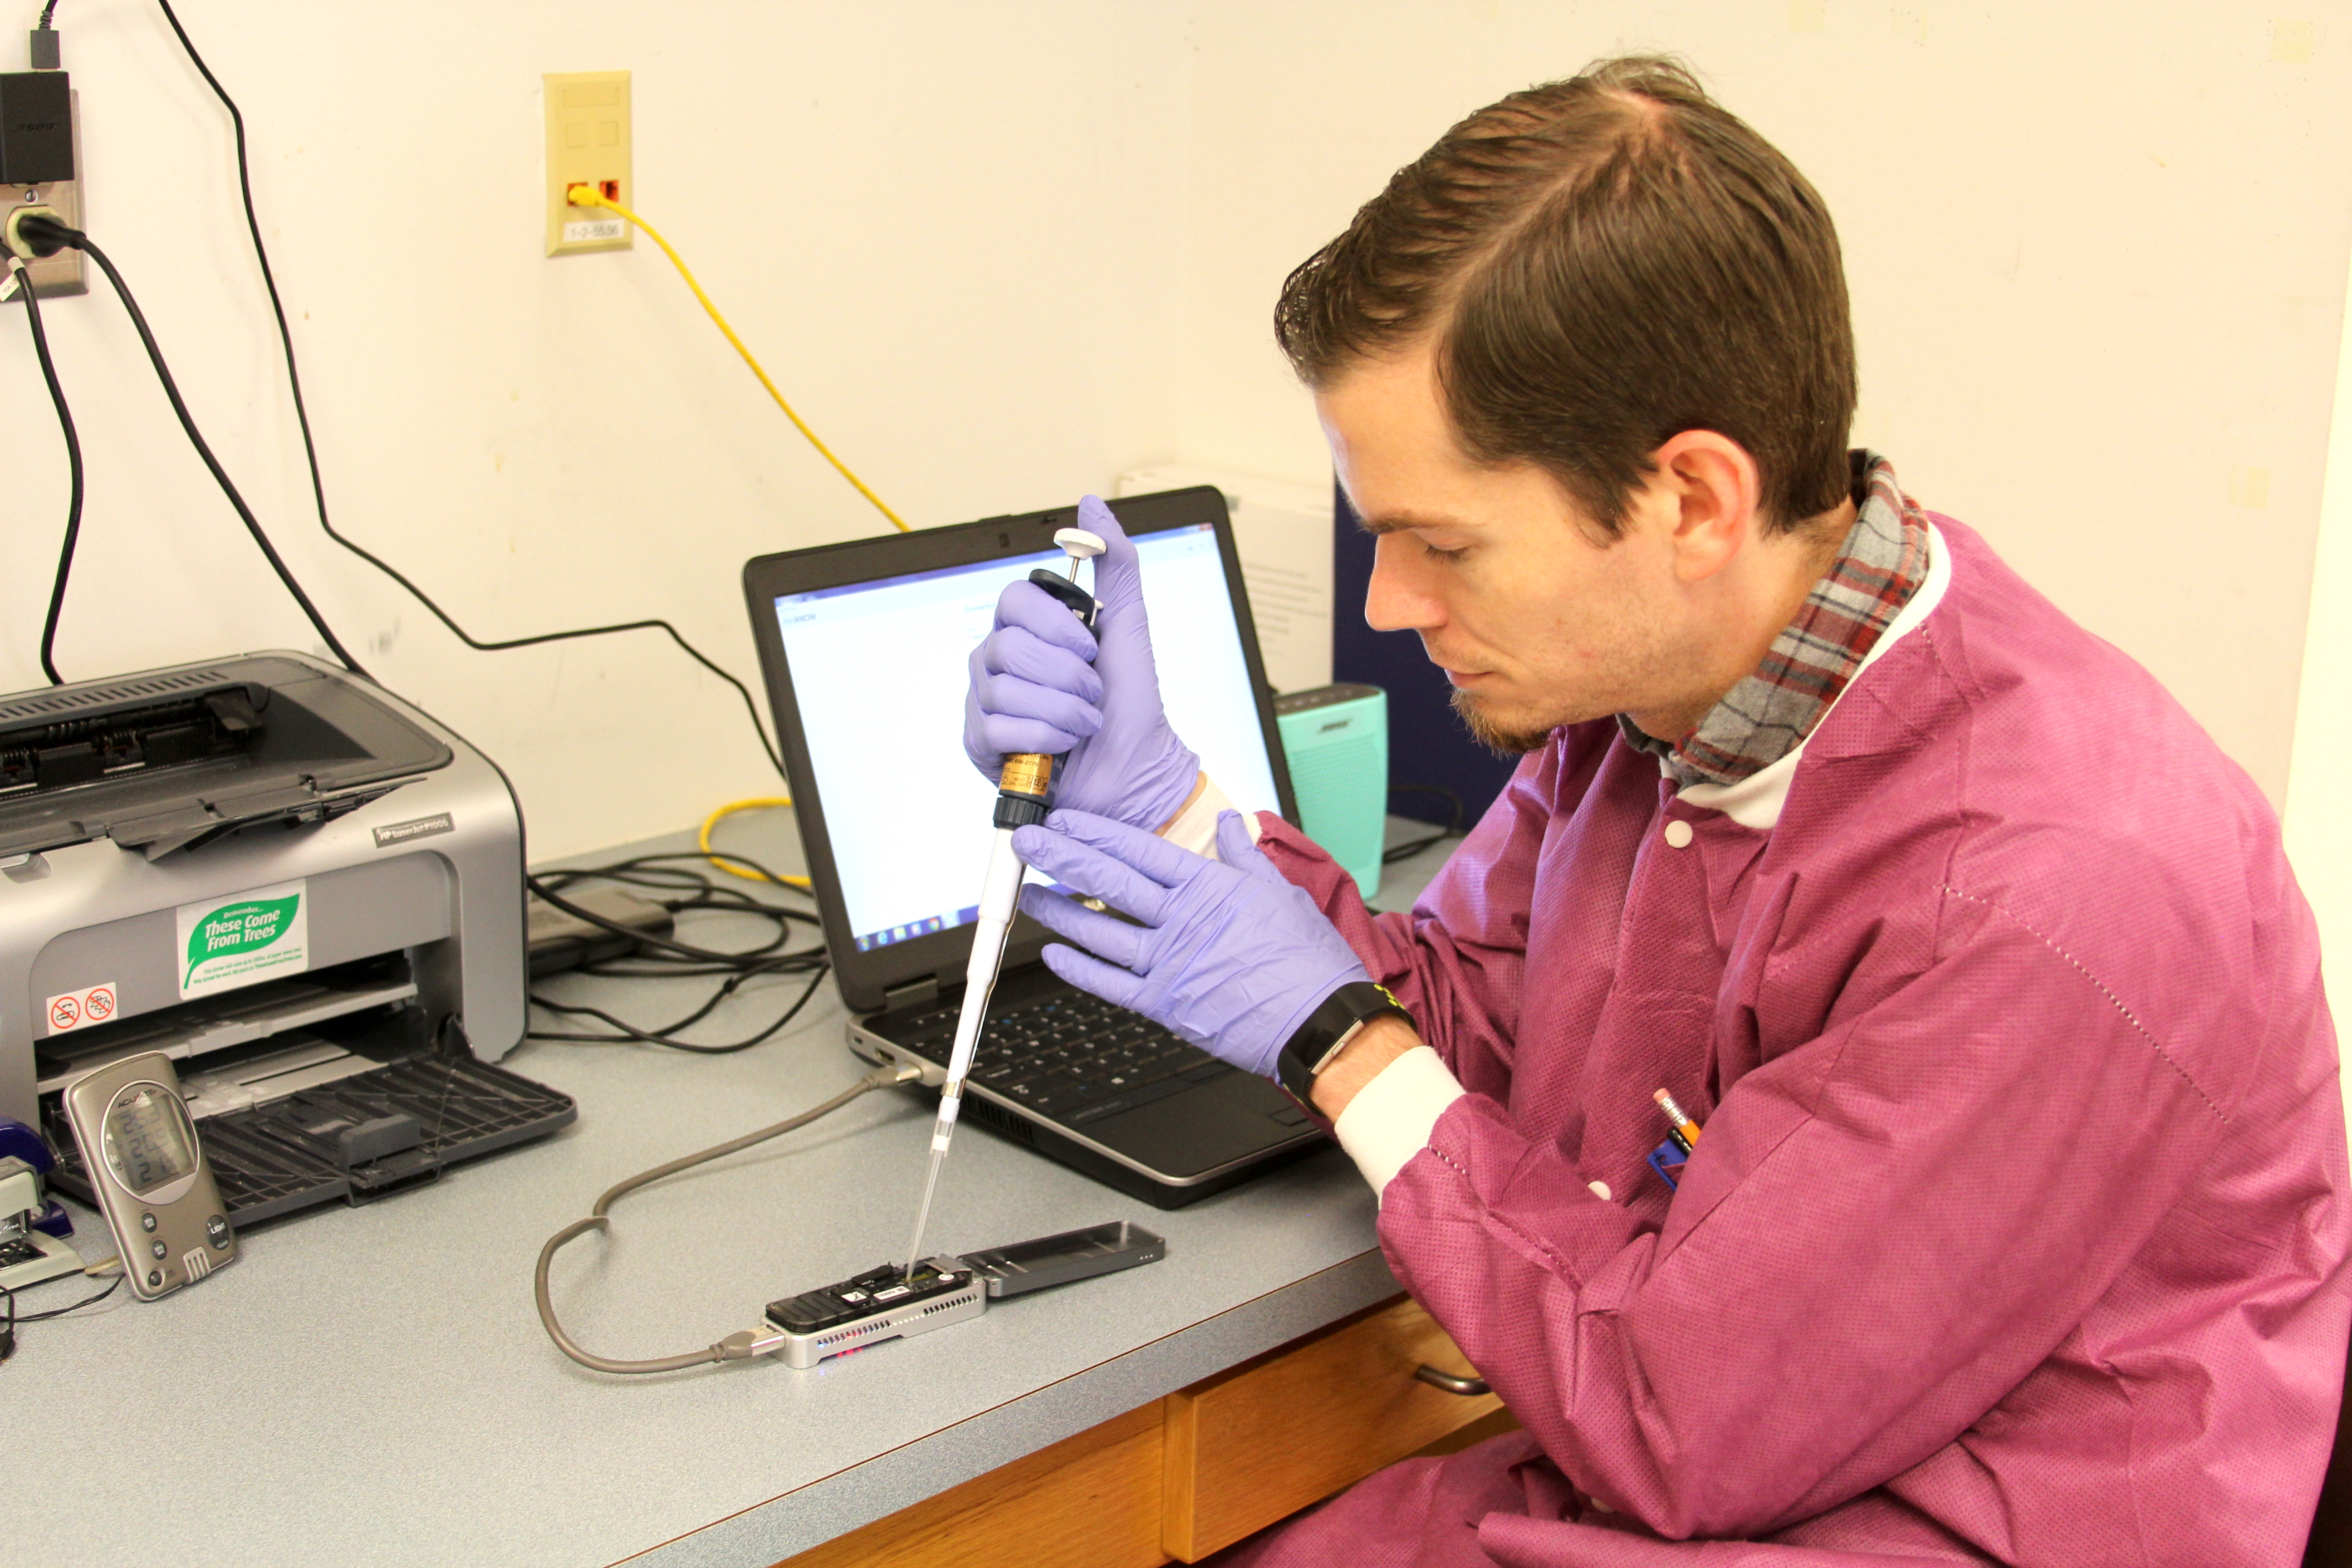 """University of Georgia Research Professional David Mann works on a portable sequencer in food scientist Xiangyu Deng's laboratory in the UGA Center for Food Safety in Griffin, Georgia. Deng has developed a one-step method of detecting and subtyping food pathogens called """"metagenomics analysis."""" The method is much quicker than traditional methods, and time is essential during outbreaks of foodborne illness."""